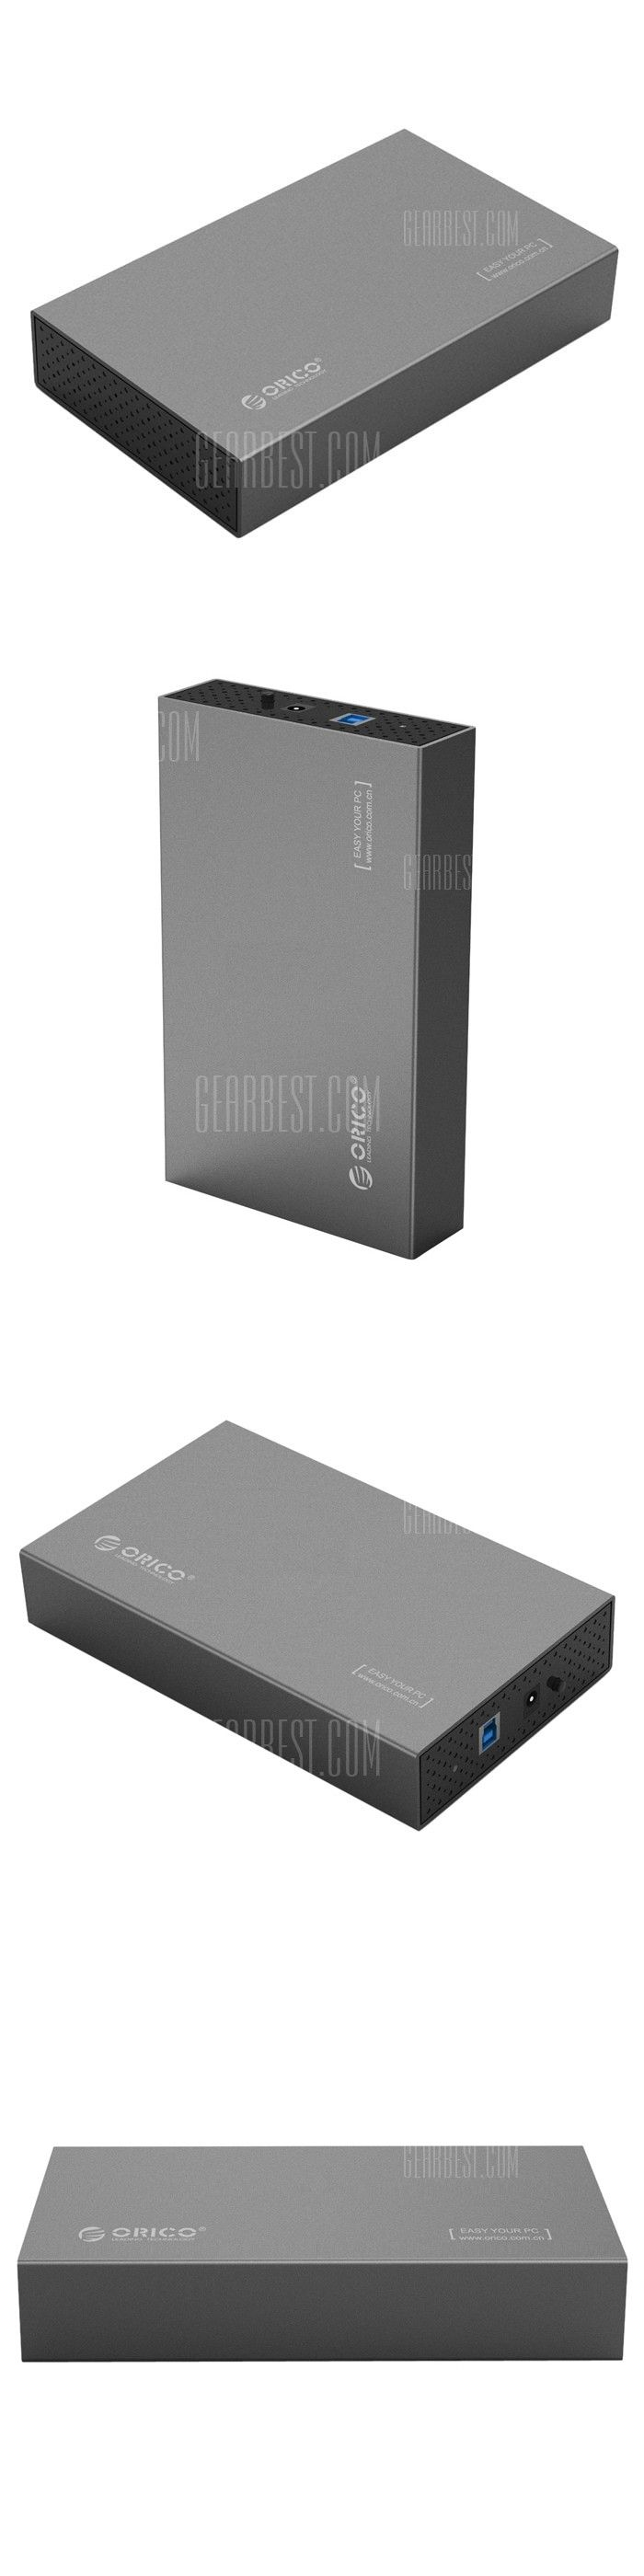 50 Best Orico Images On Pinterest In 2018 U2 Cable And Cabo 2518s3 Sata3 Aluminum 25 Inch Hard Drive Enclosure Silver